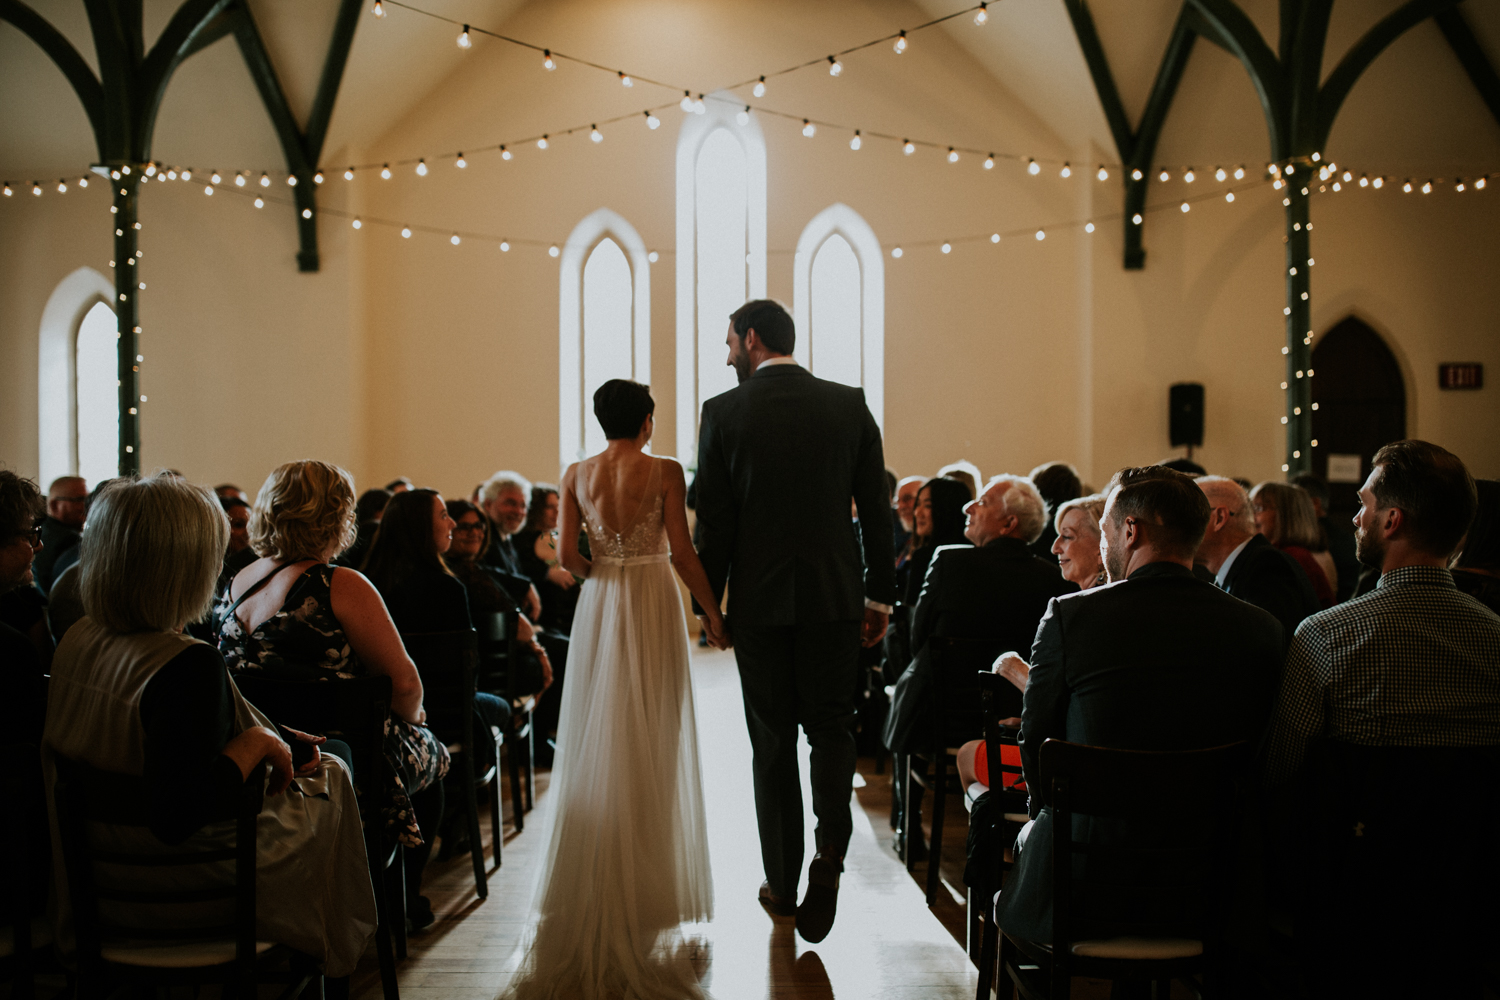 wedding day timeline - 1:00 - 2:00: Getting Ready2:00 - 2:20: First Look2:20 - 3:30: Bridal party/Bride & Groom Portraits4:00 - 4:30: Ceremony4:30 5:00: Family Photos5:00 - 6:00 Cocktail Hour6:00 - 8:30: Dinner/Speeches8:30: First DancePARTY!